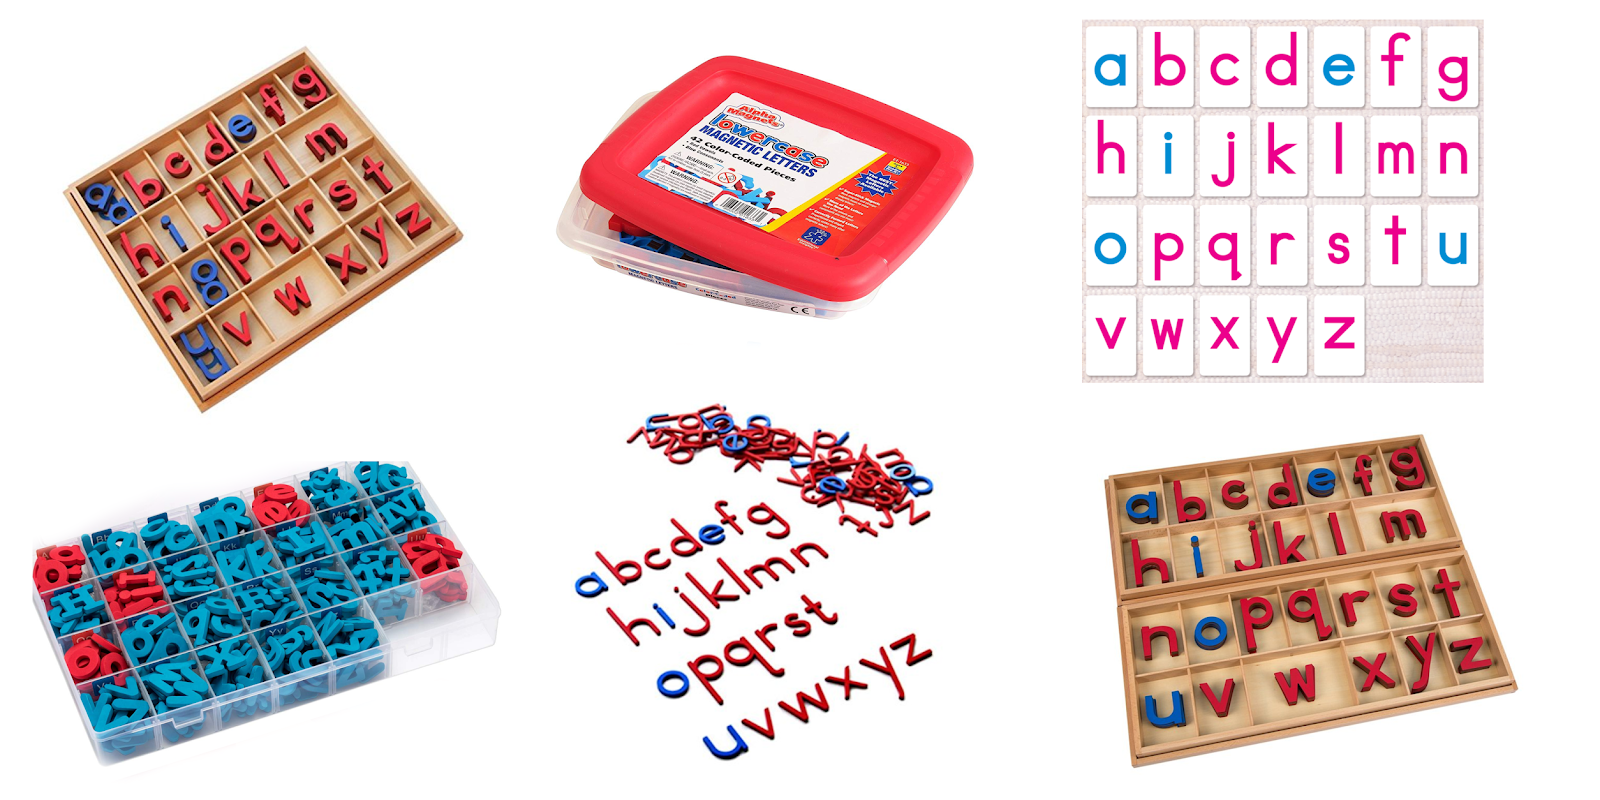 The Montessori movable alphabet can give young children the tools they need to write well before they are able to write with paper. Here are some common questions and some movable alphabet options.